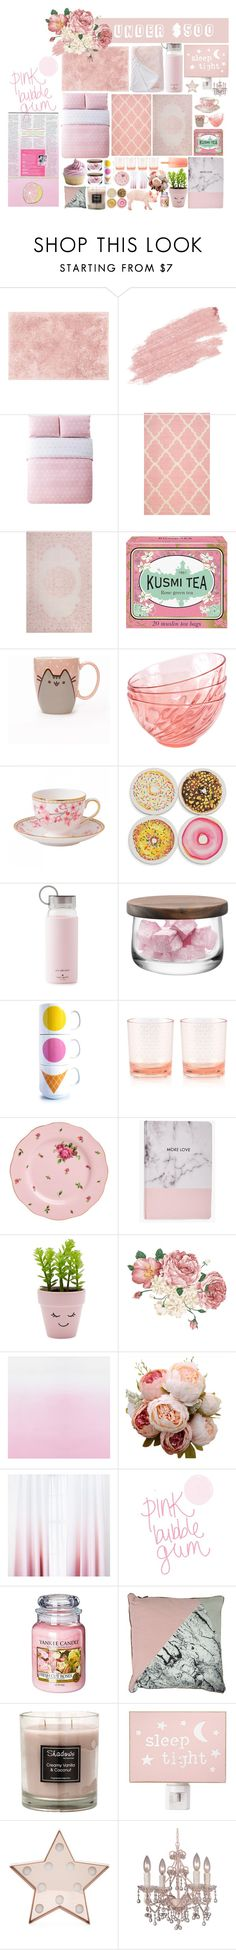 """""""Hyperblush"""" by anna-pensky ❤ liked on Polyvore featuring interior, interiors, interior design, home, home decor, interior decorating, Loloi Rugs, Jane Iredale, Nordstrom Rack and Lala + Bash"""